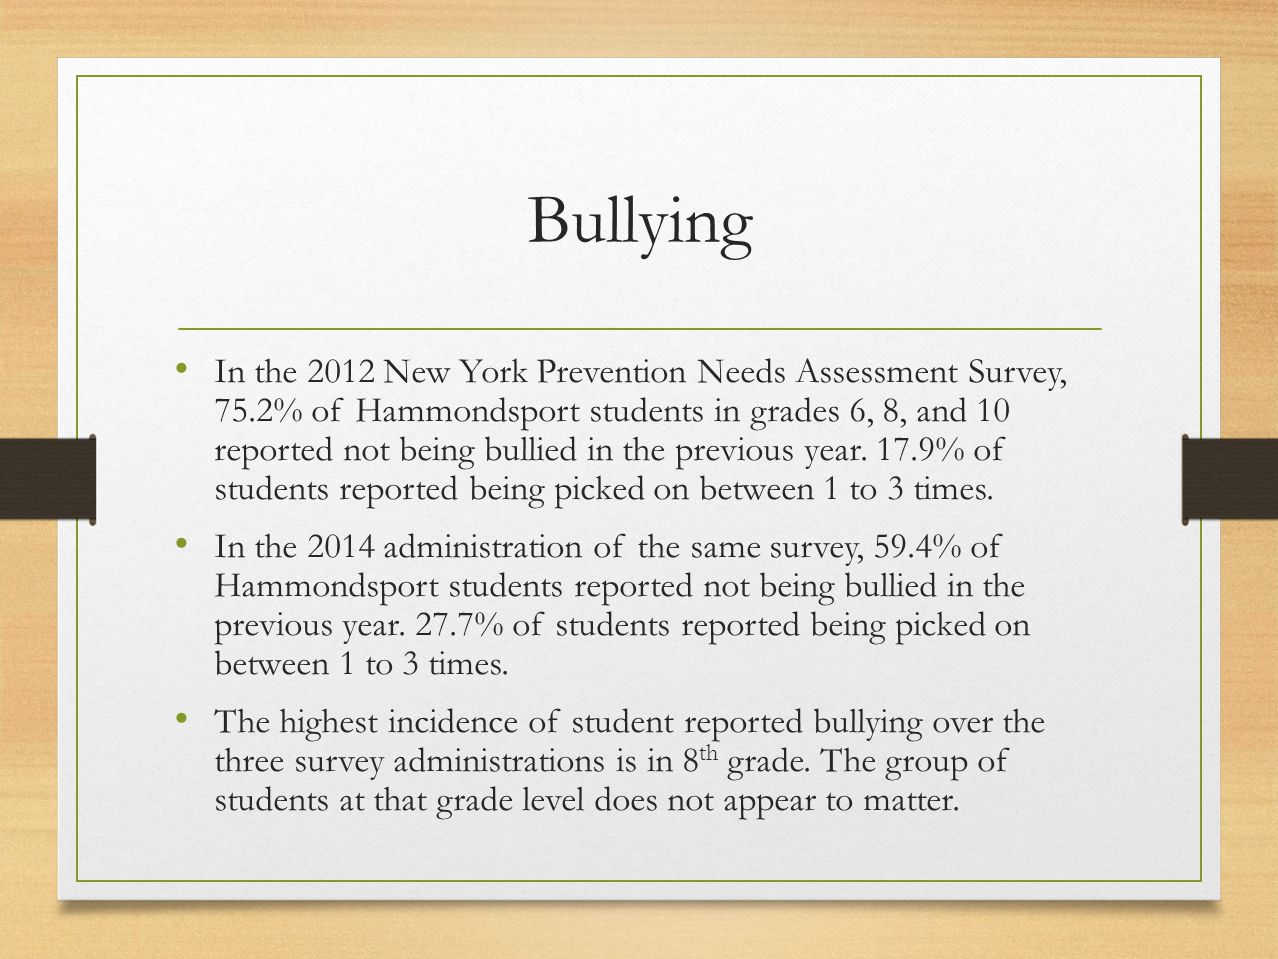 Bullying In the 2012 New York Prevention Needs Assessment Survey, 75.2% of Hammondsport students in grades 6, 8, and 10 reported not being bullied in